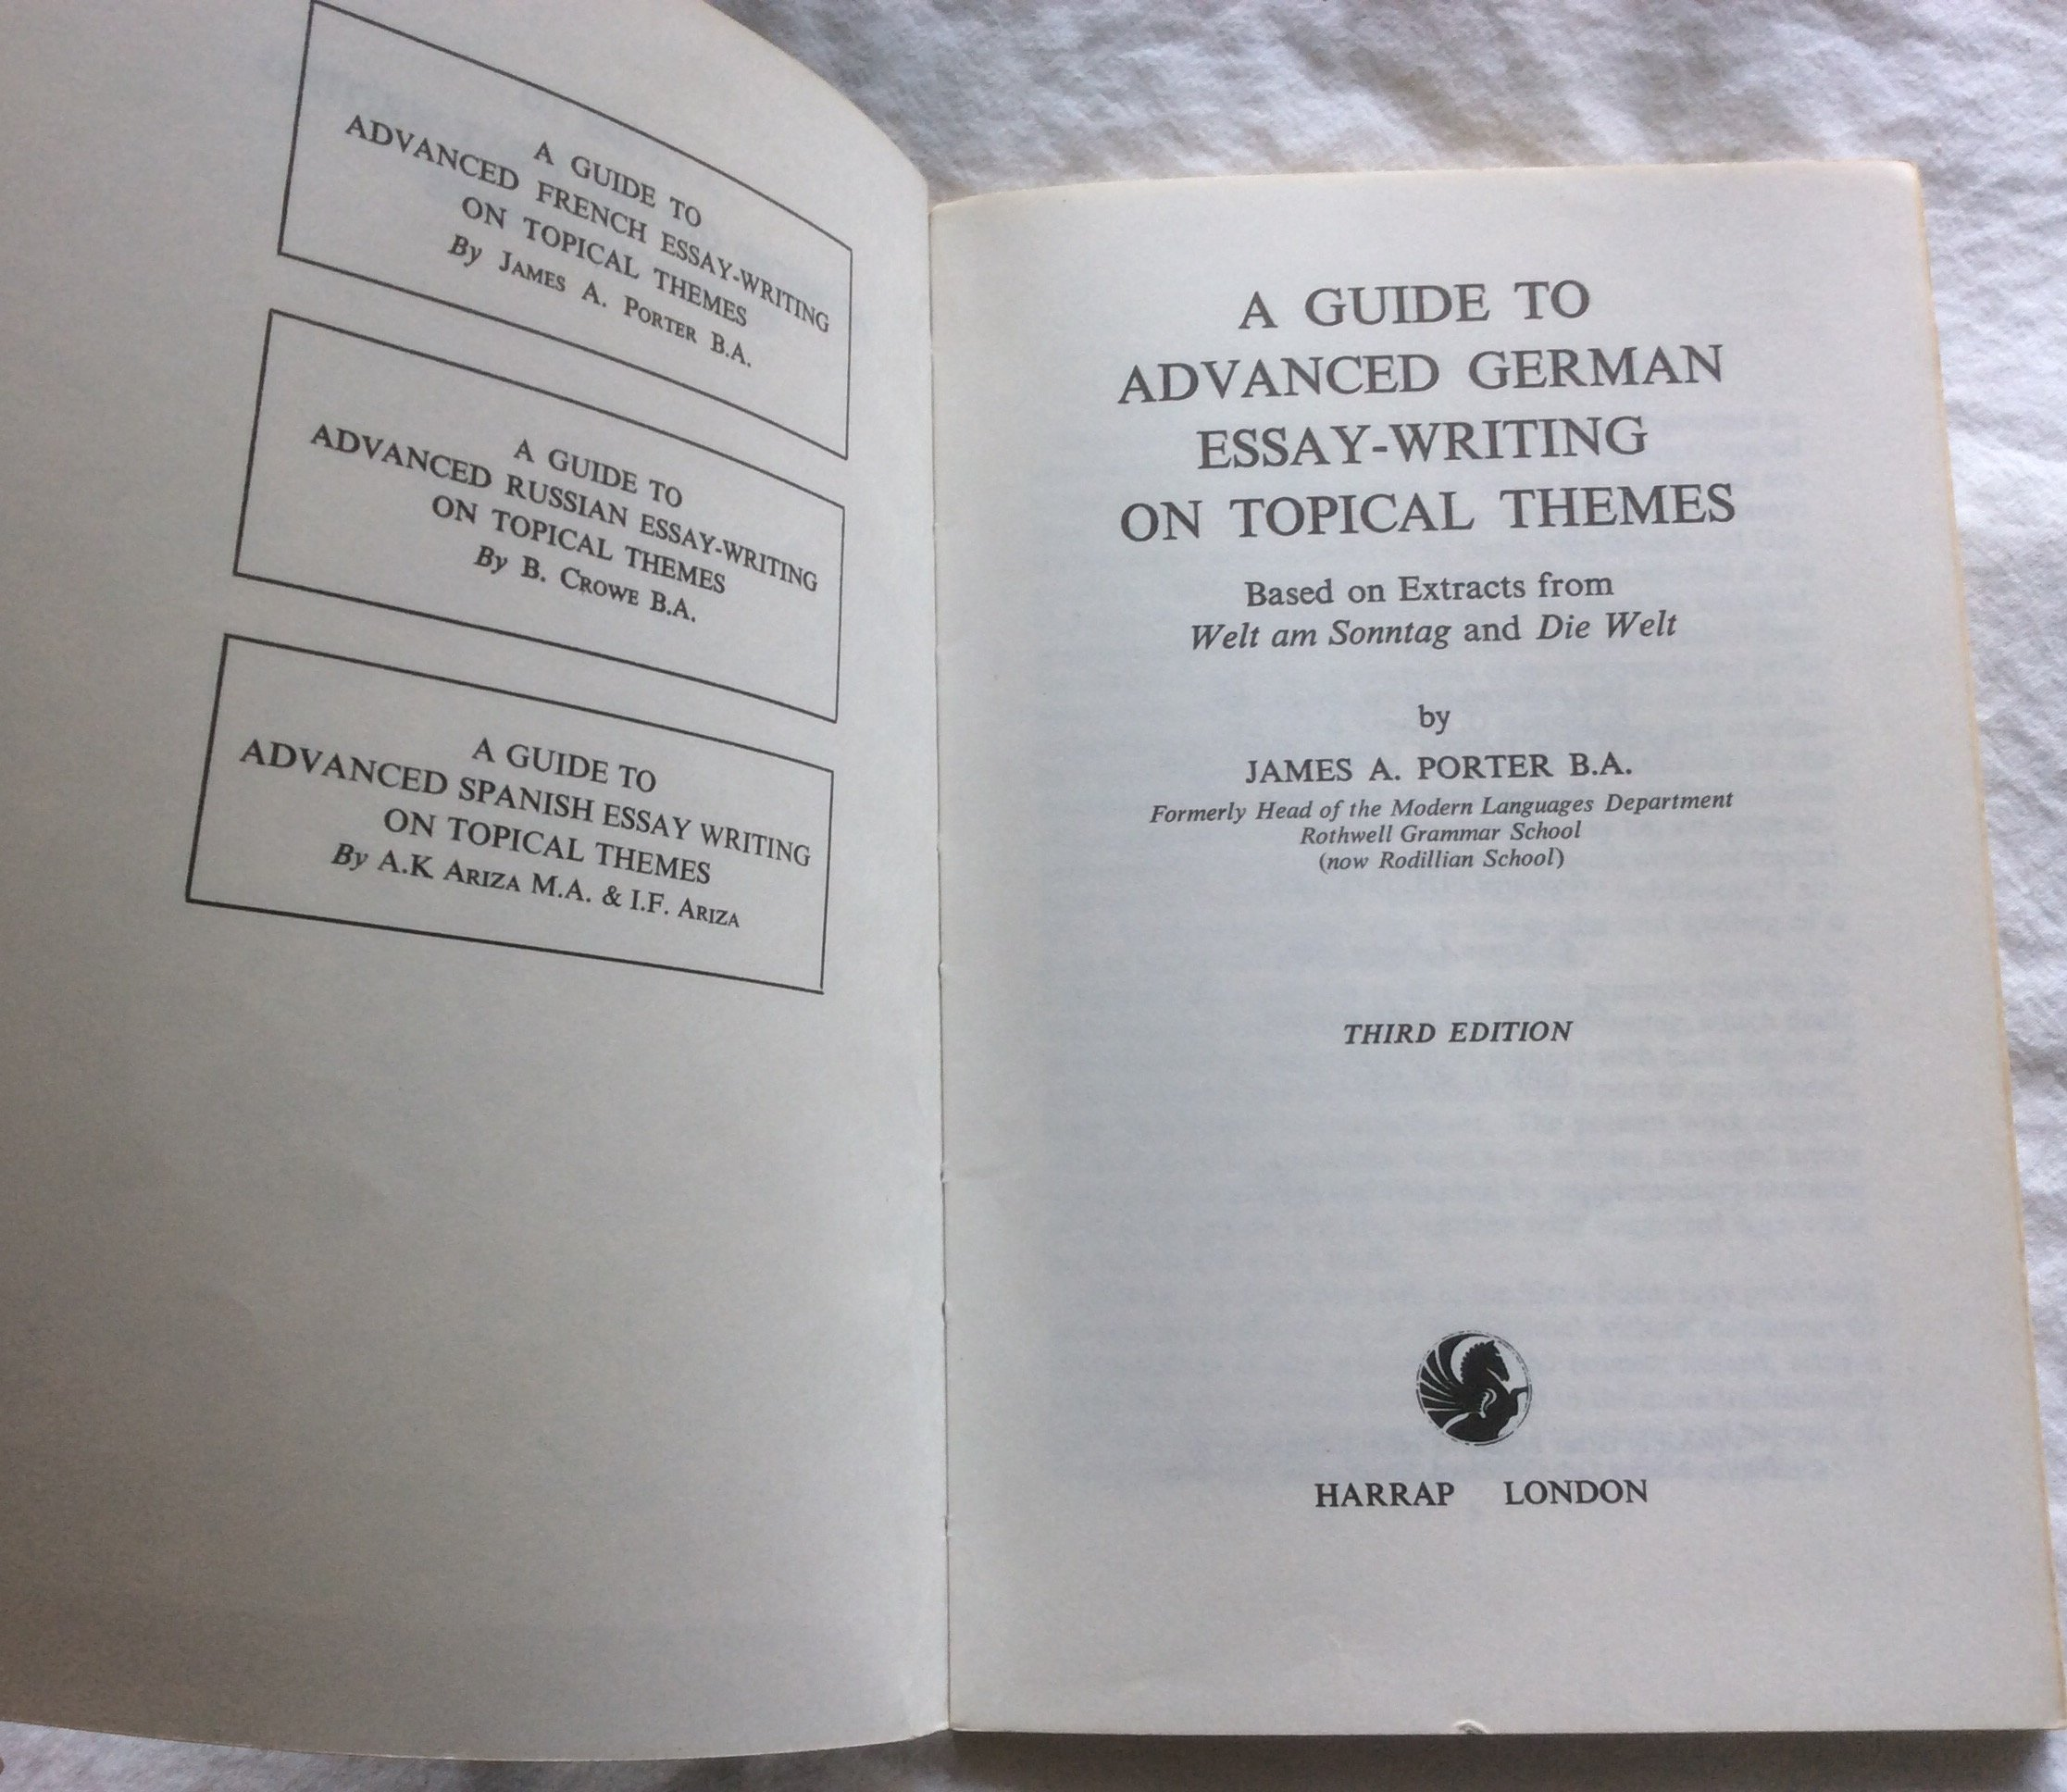 multiple fronts for germany essay Then came the end of the third reich, as the soviets took berlin, adolf hitler committed suicide on april 30, and germany surrendered unconditionally on all fronts on may 8 (may 7 on the western.